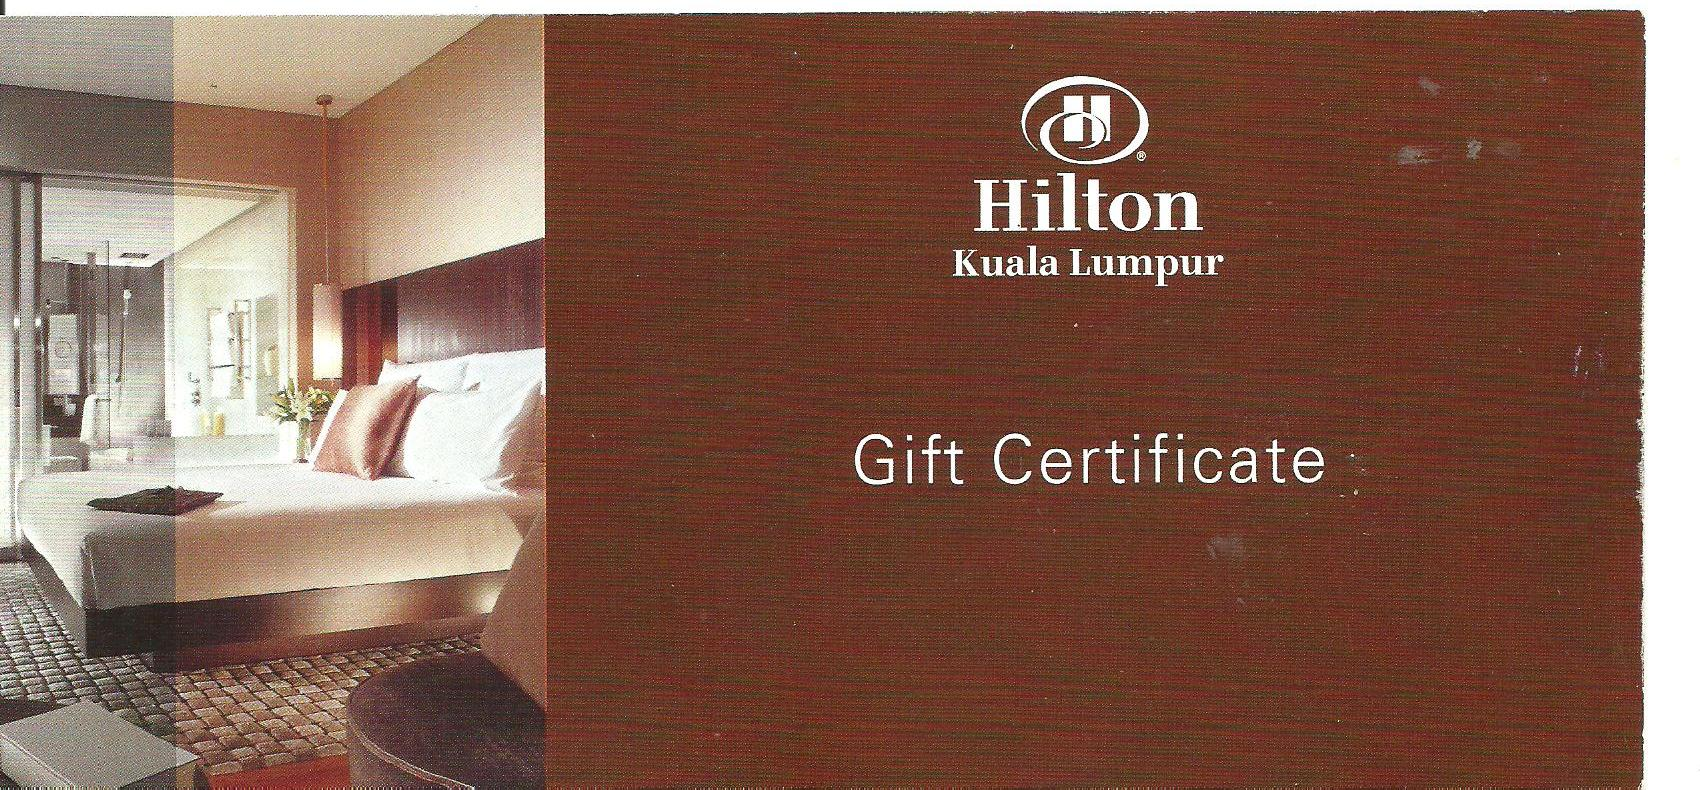 Vouchers For Hilton Hotels Brand Coupons